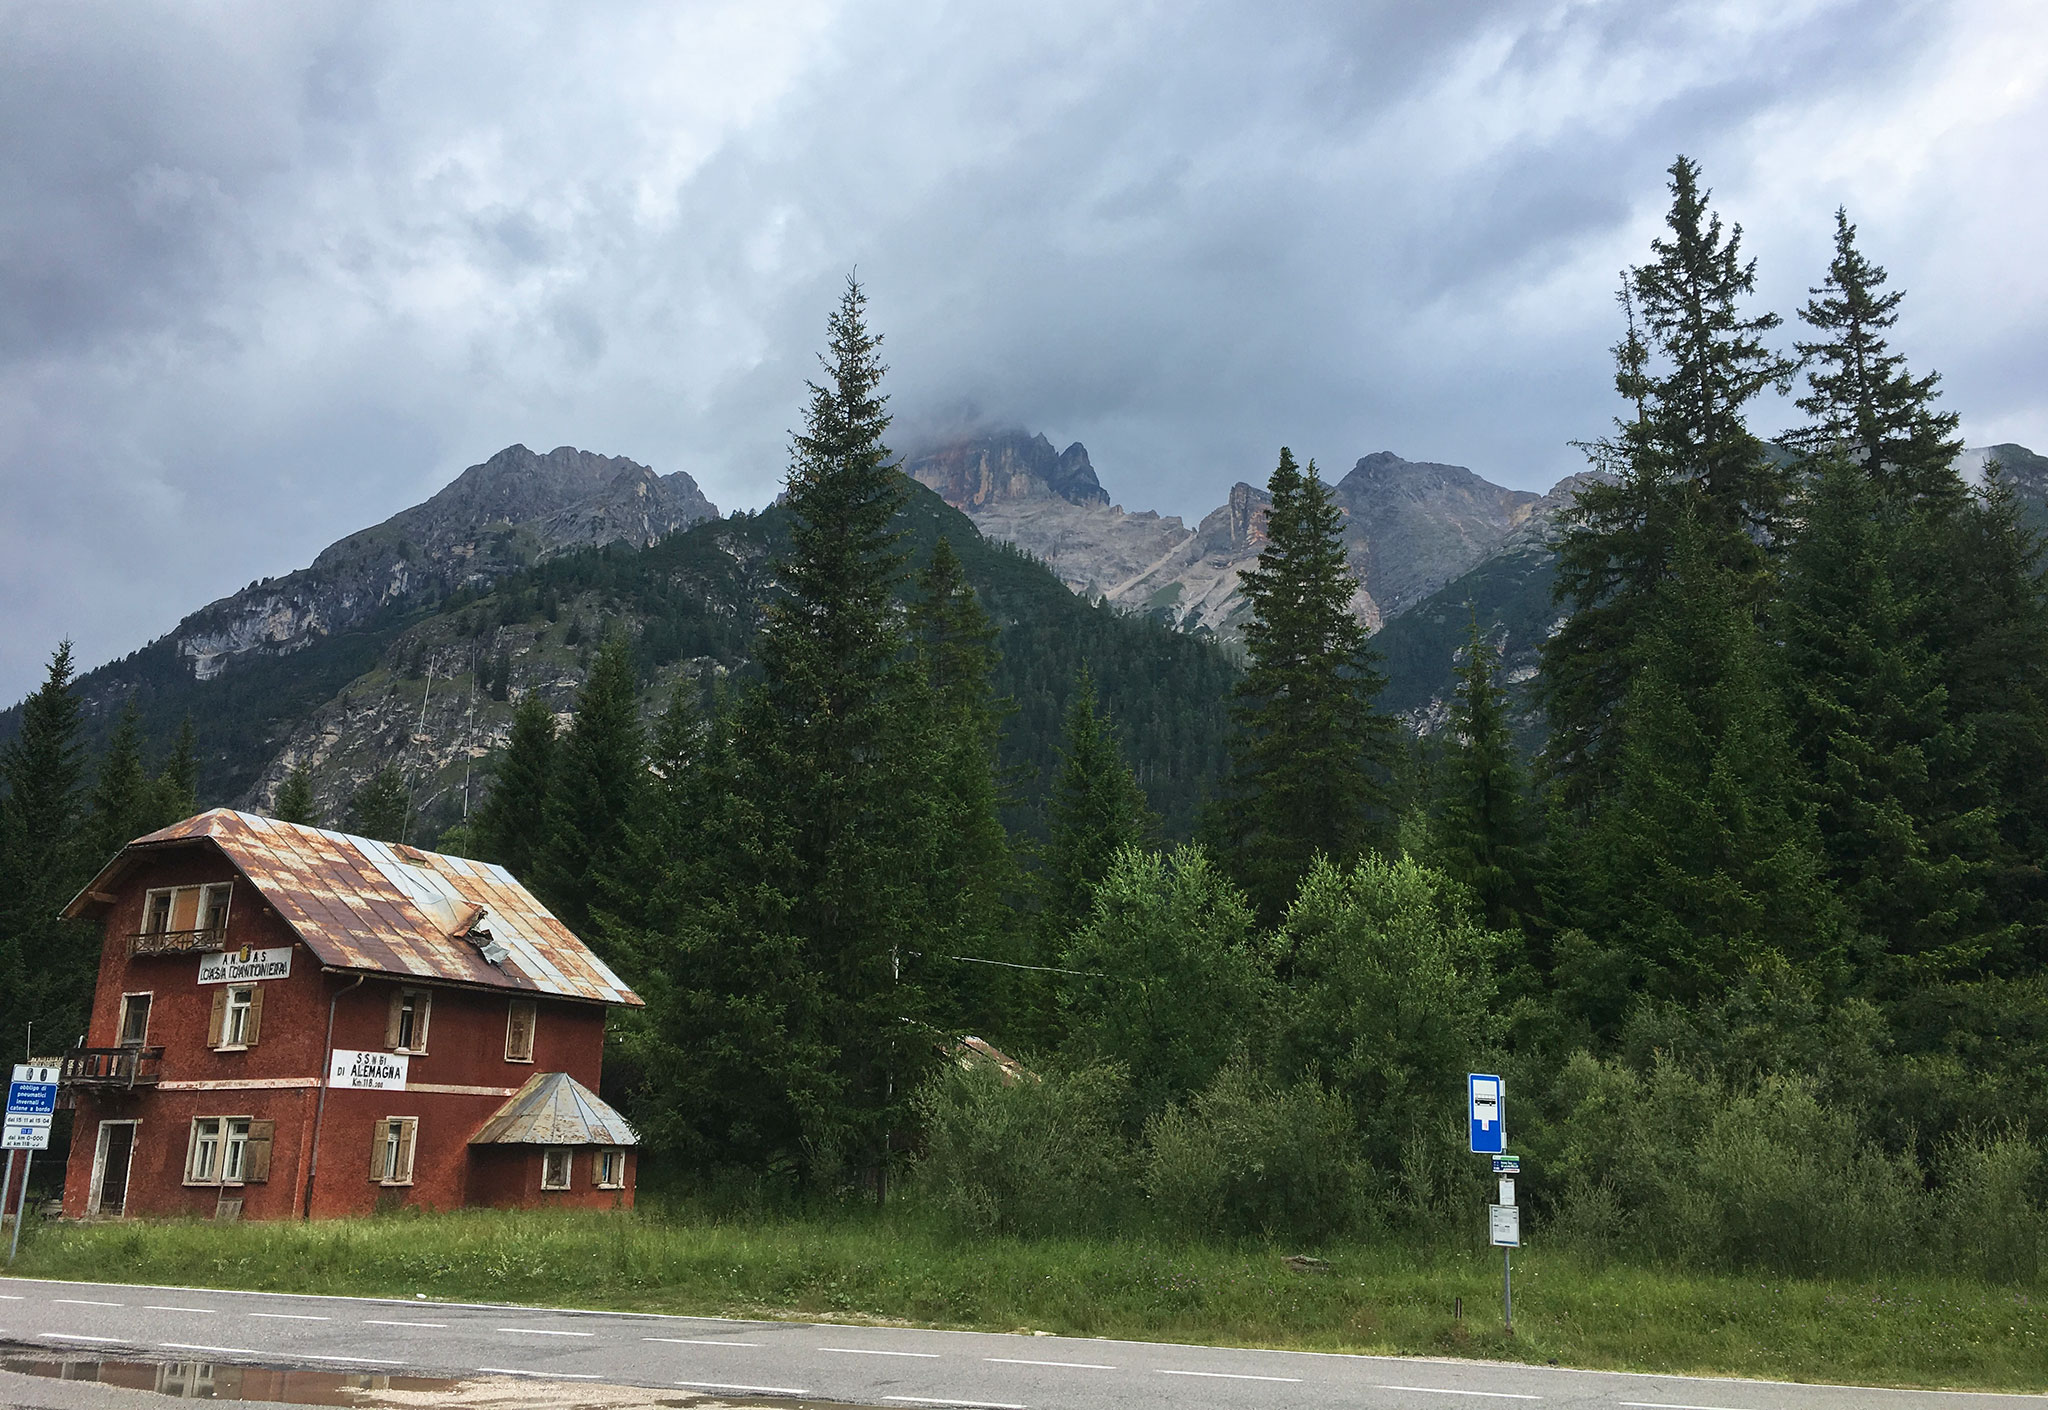 With the heayy looming clouds made a stop at Ciambache on the way towards Cortina d'Ampezzo